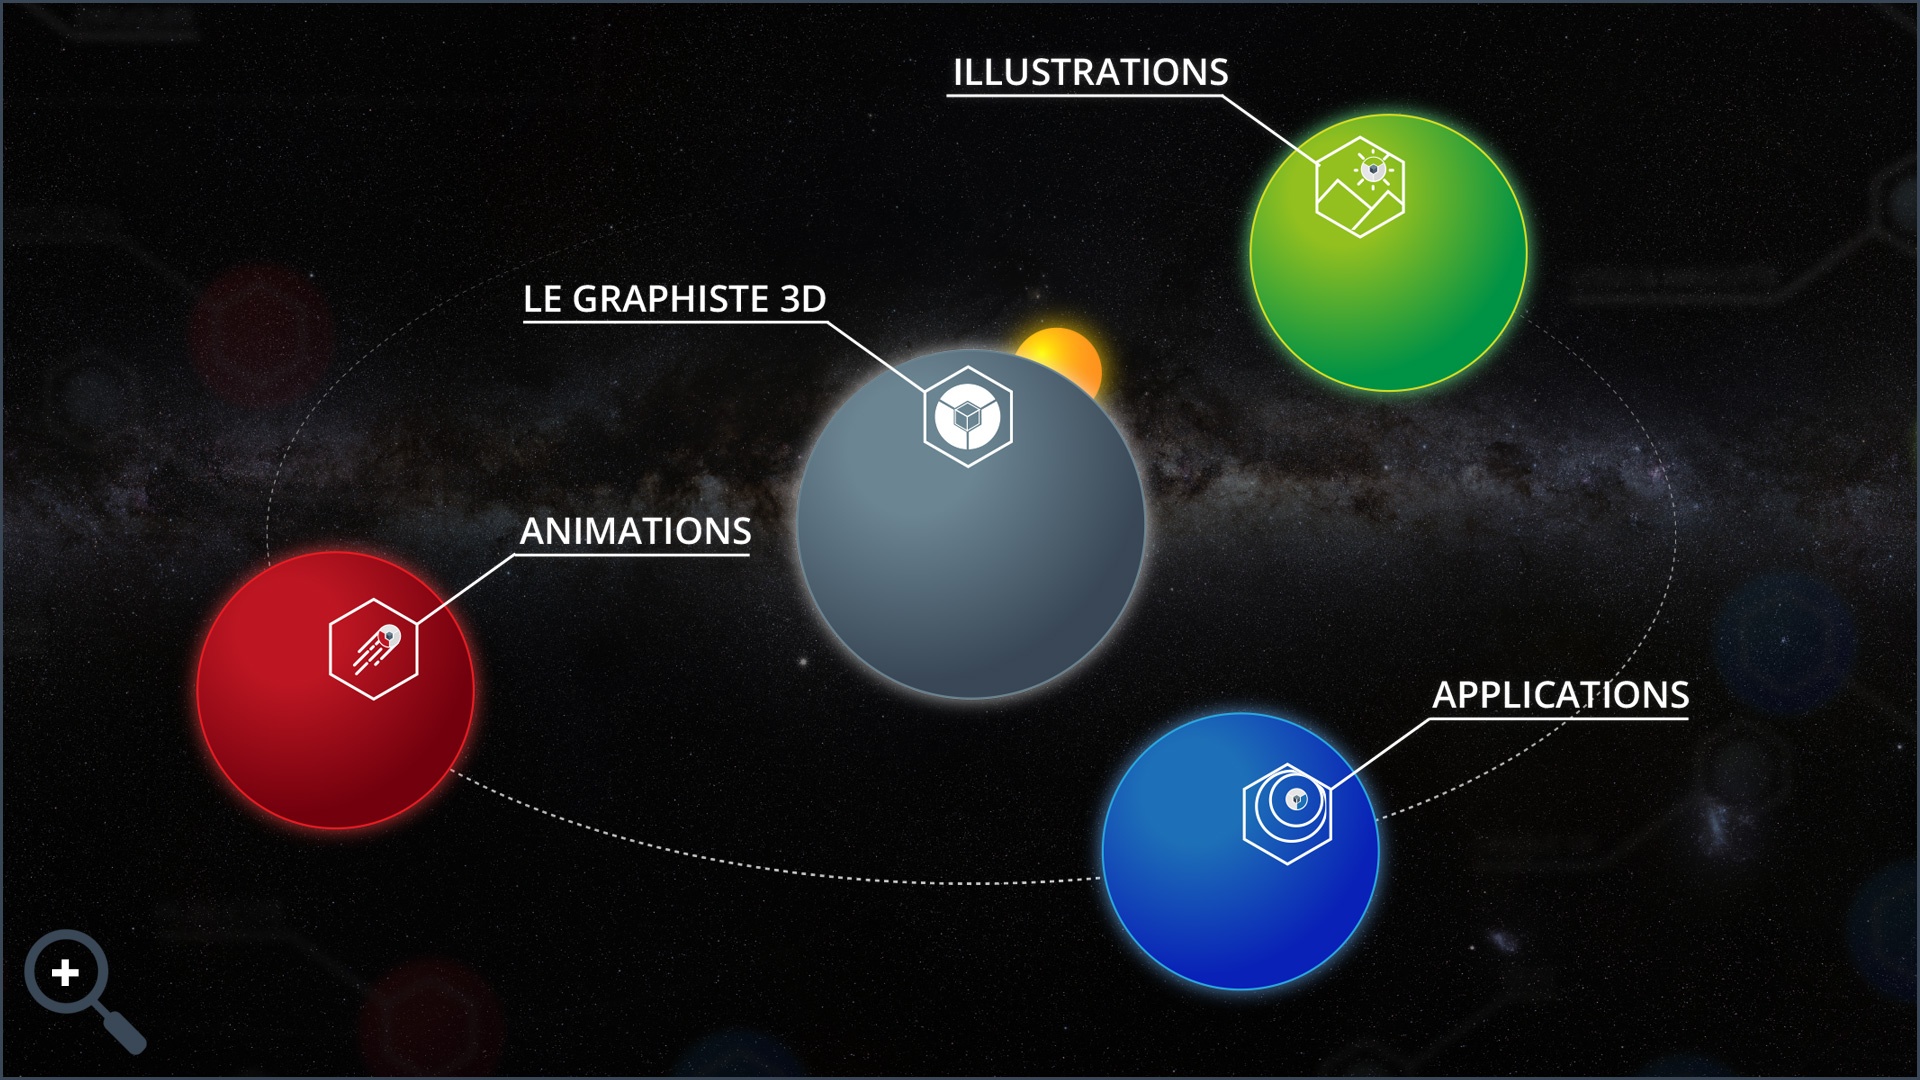 Réalisations - Illustrations - Animations - Applications - Le Graphiste 3D